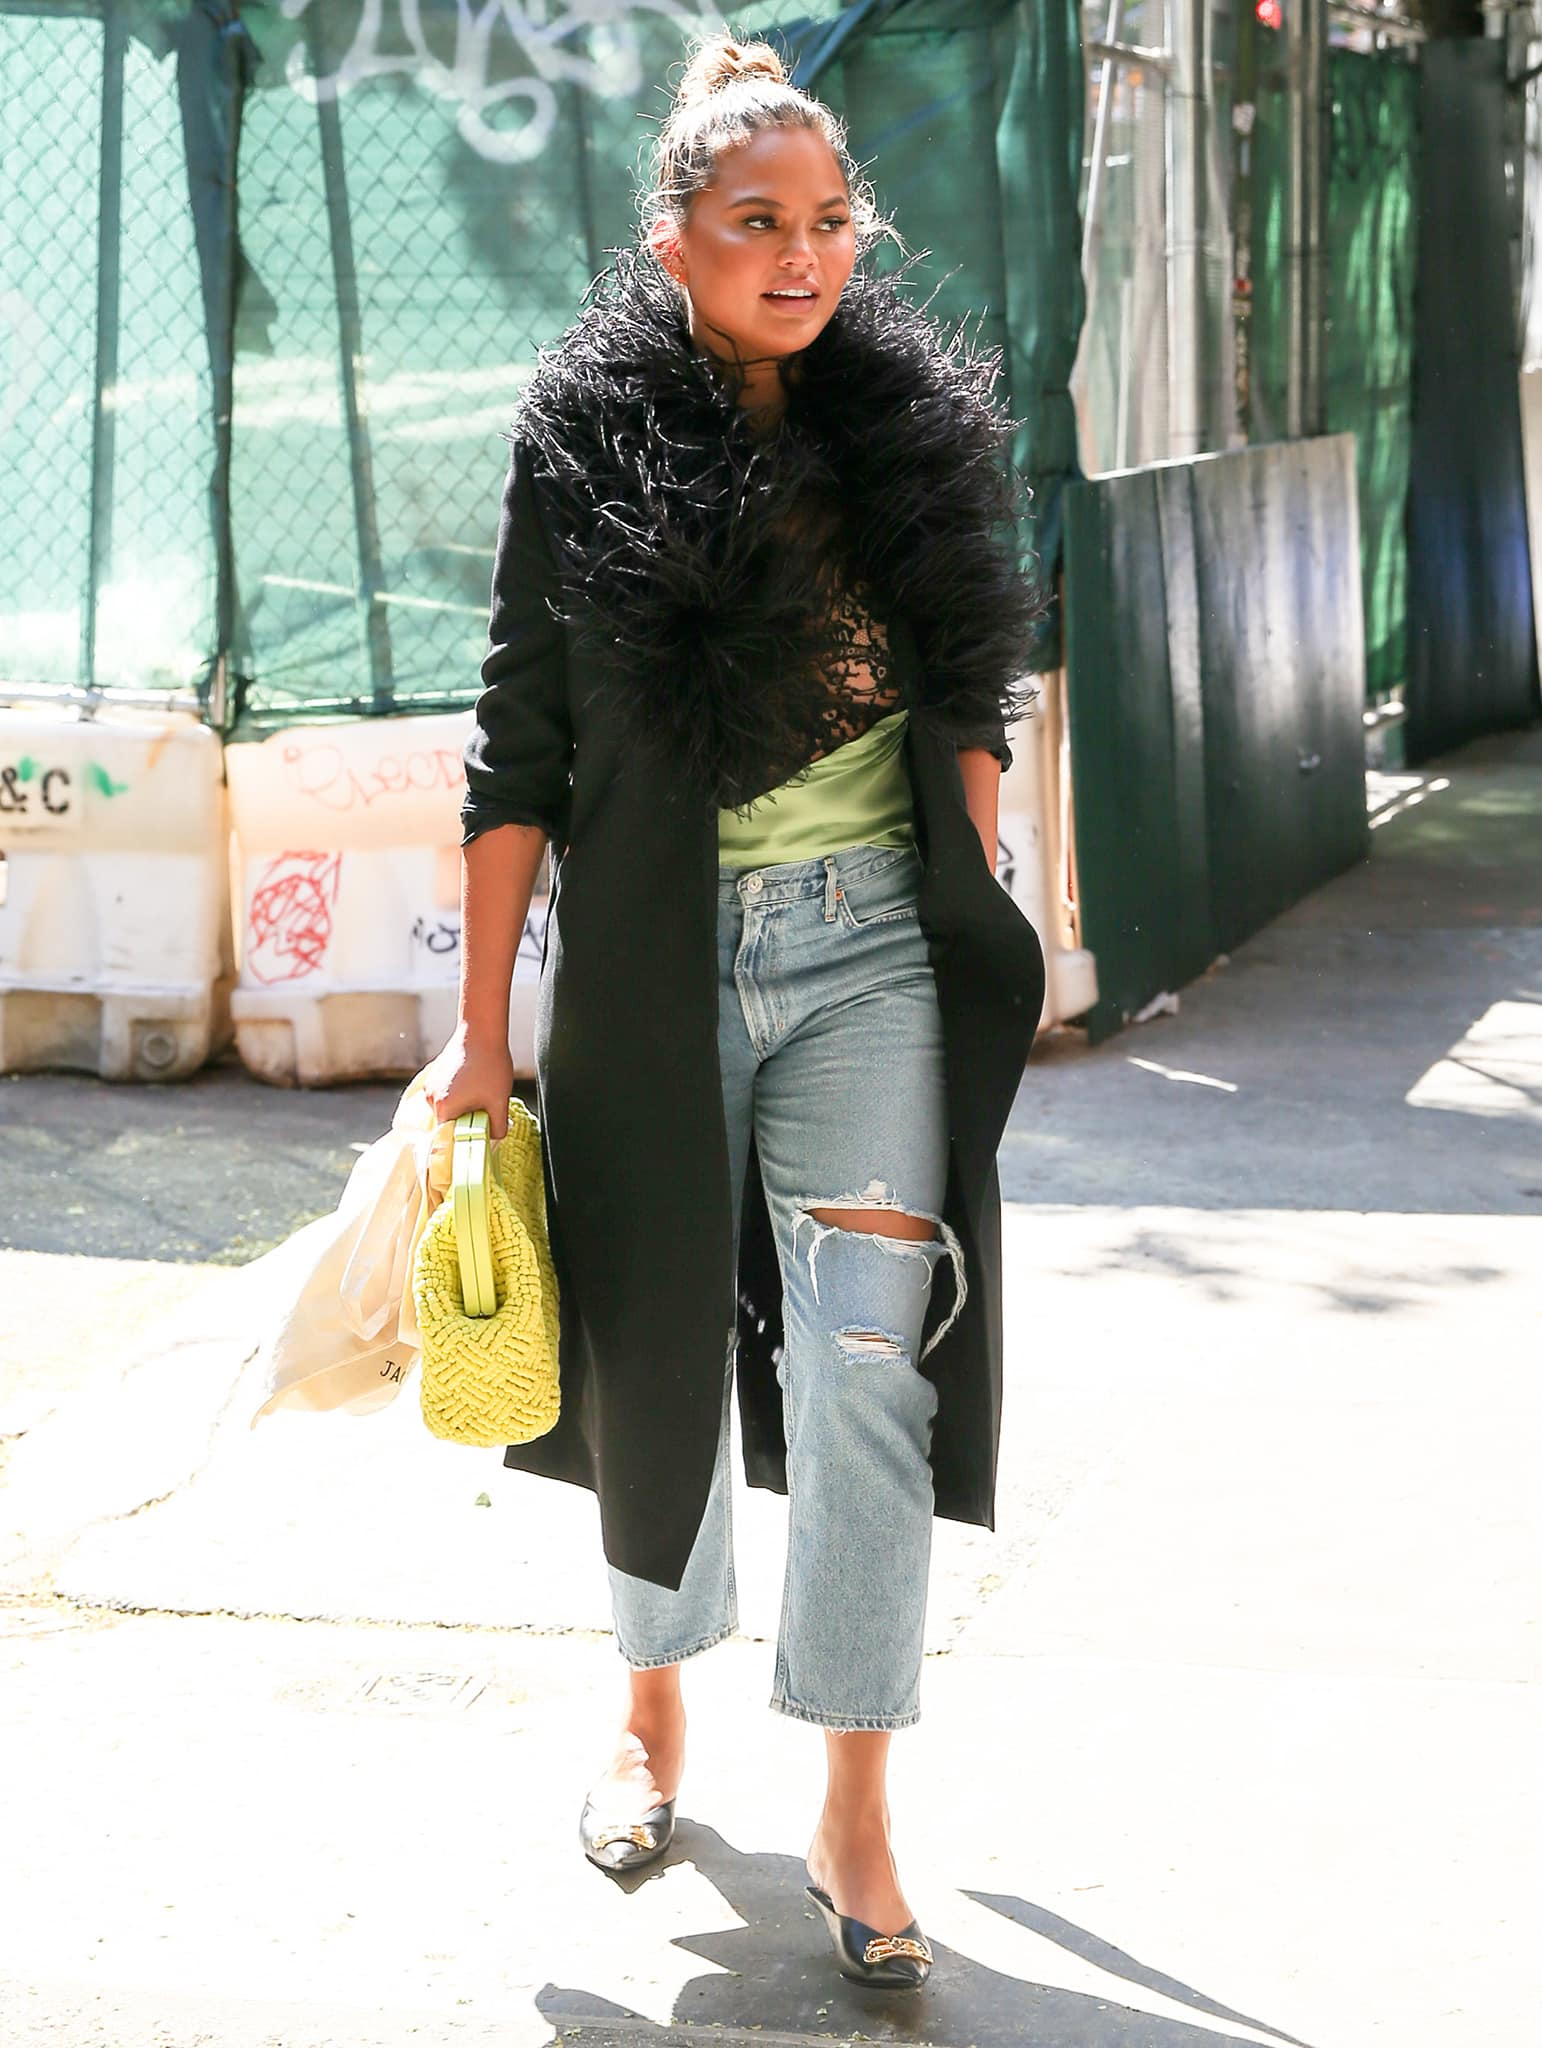 Chrissy Teigen teams her green Gauchere Theophilia lace camisole with Citizens of Humanity Charlotte high-rise straight jeans